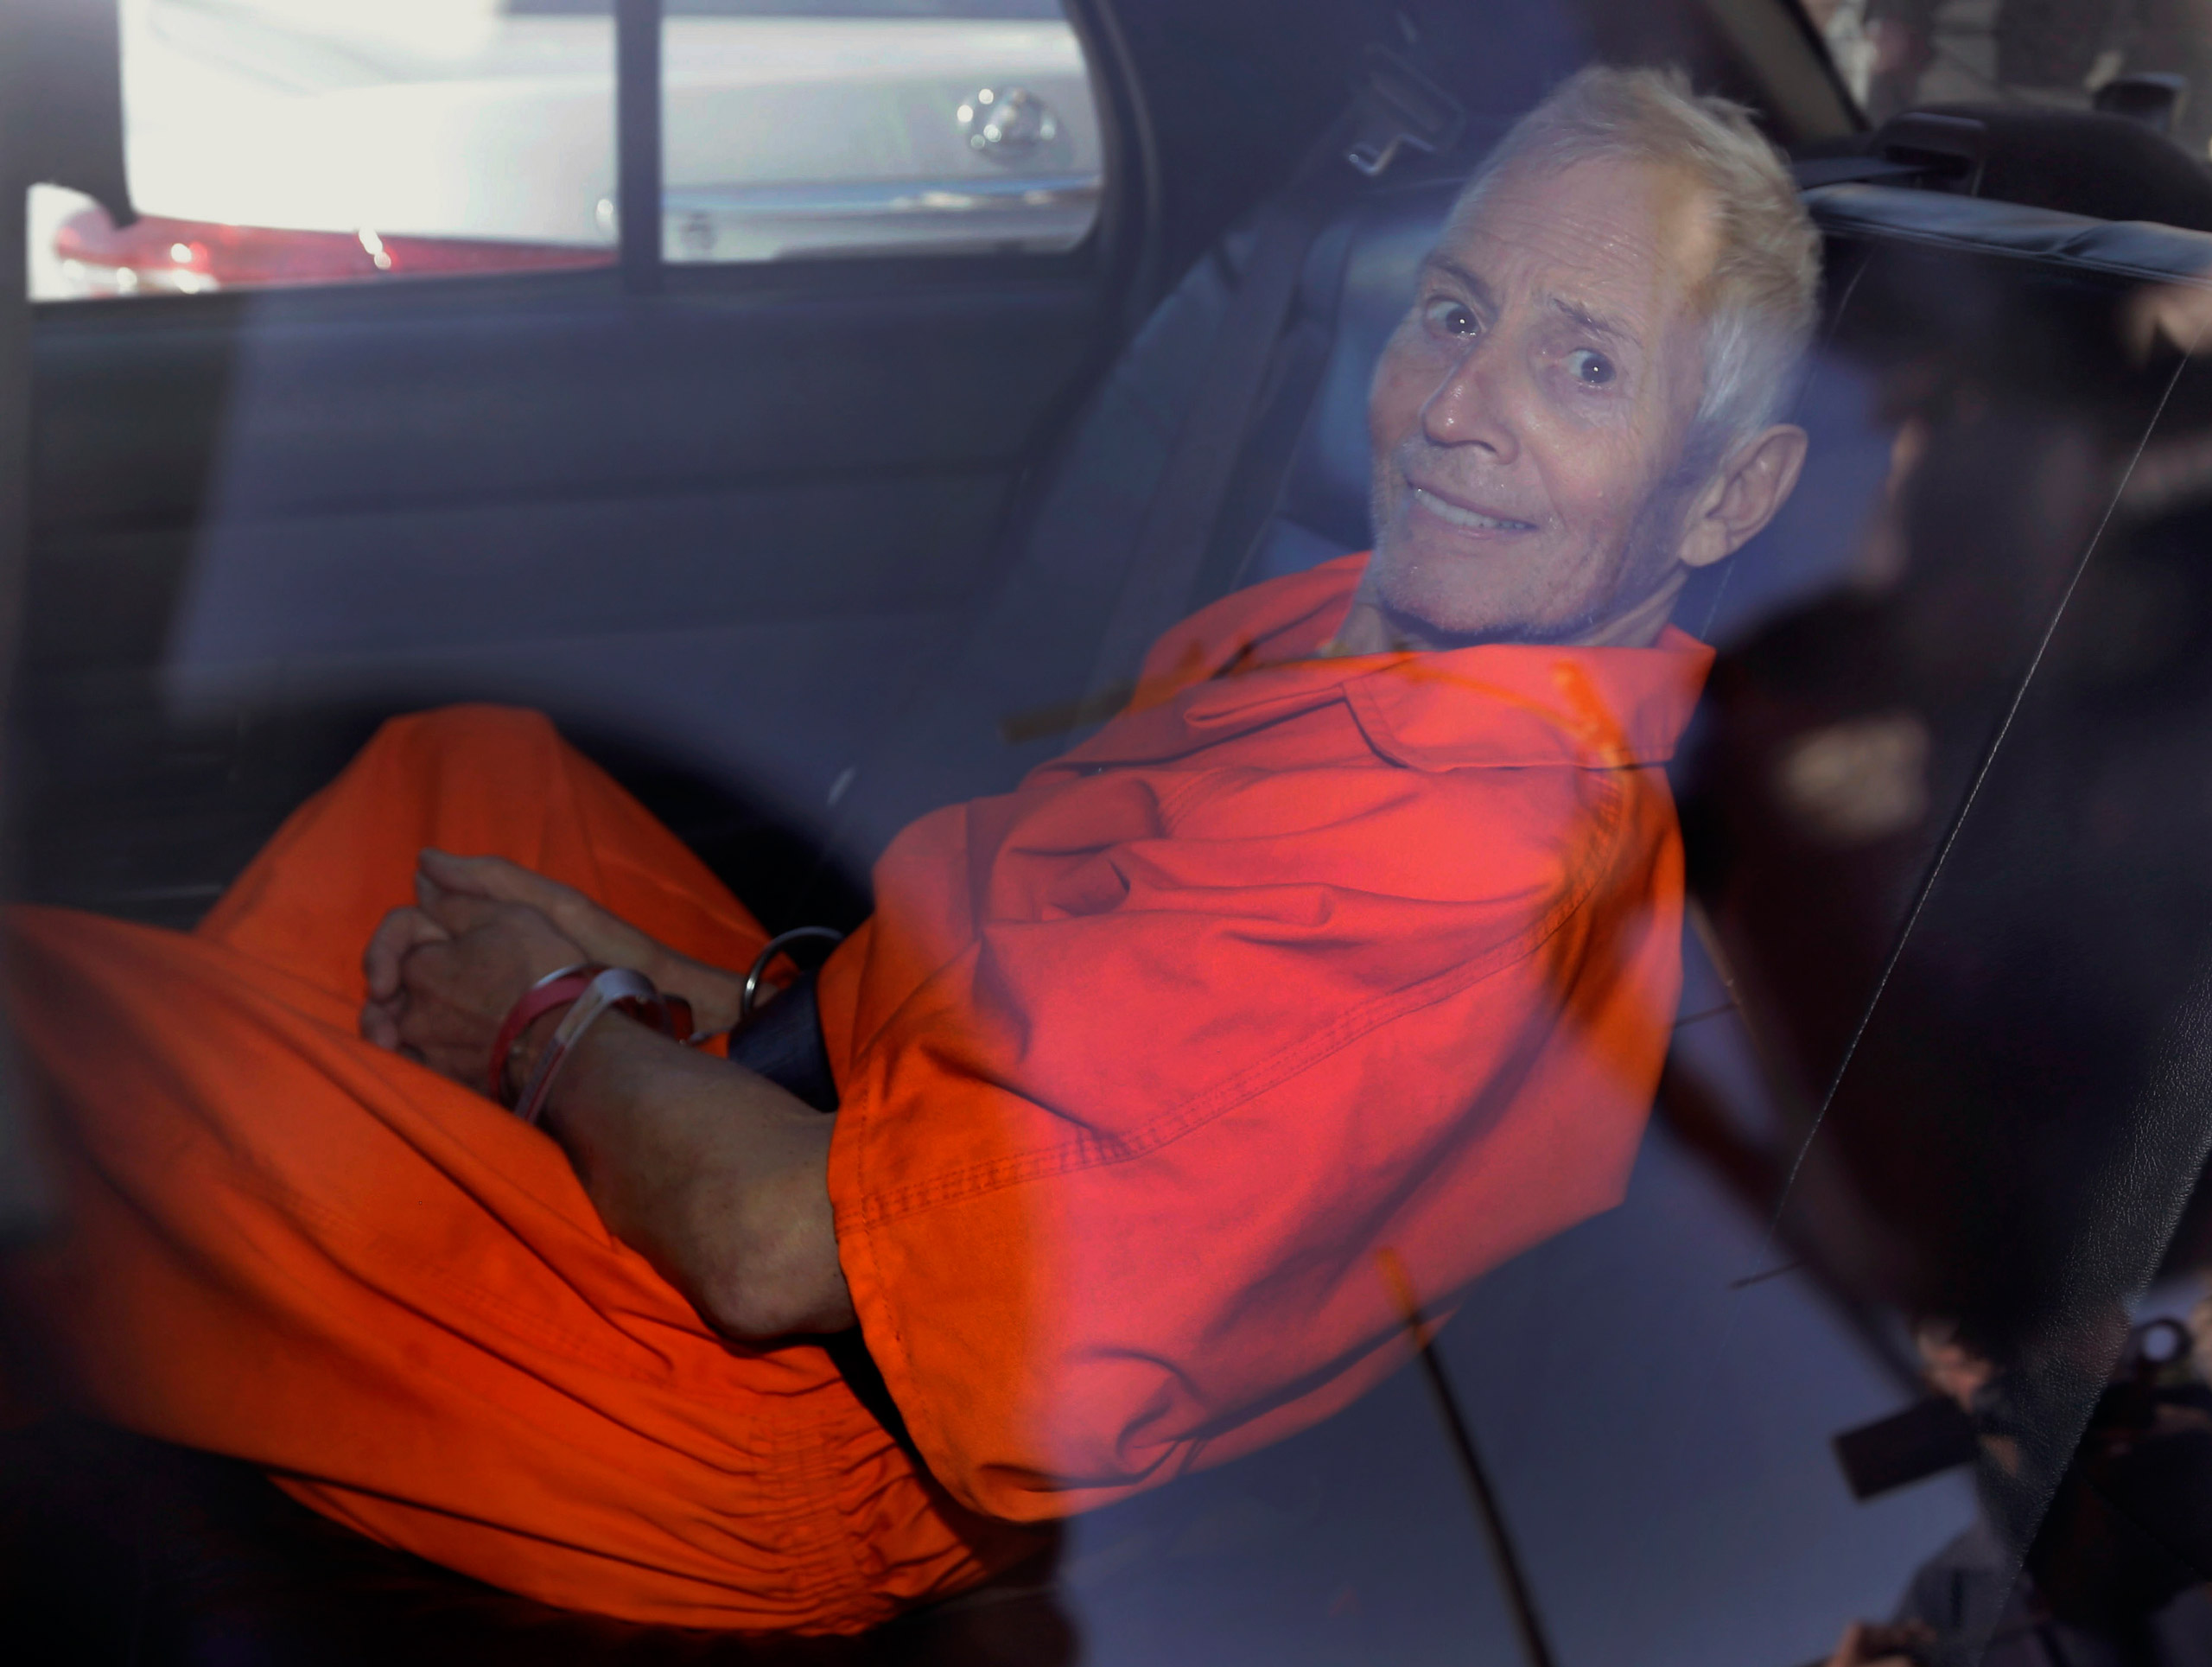 Robert Durst is transported from Orleans Parish Criminal District Court to the Orleans Parish Prison after his arraignment in New Orleans on March 17, 2015.